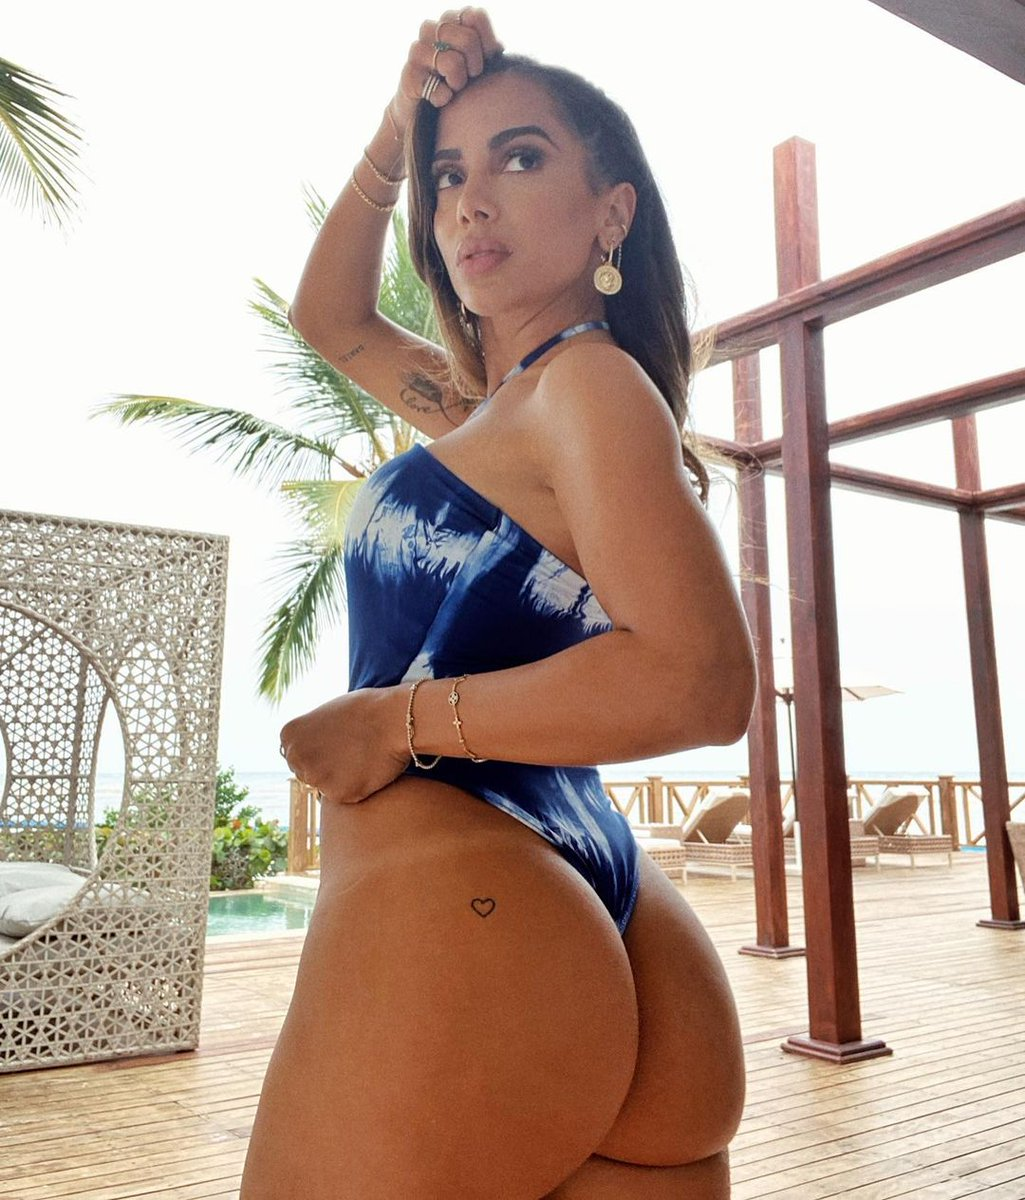 I'll admit it... I have a serious crush on a #GirlFromRio. 🥰  #Anitta https://t.co/Oh7NaarCYS